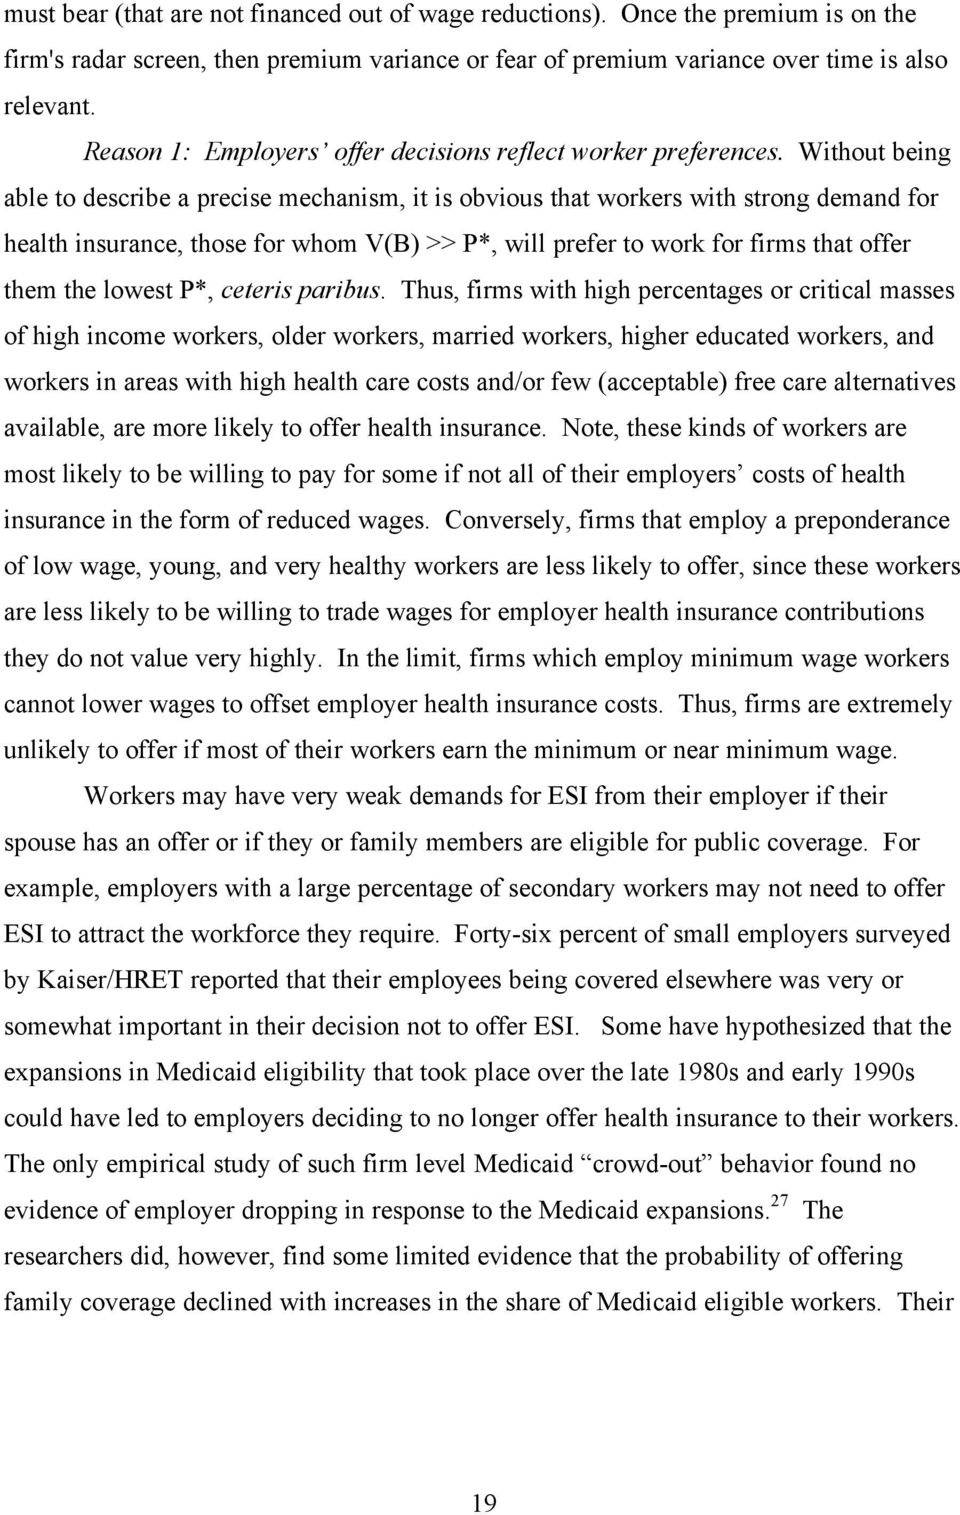 Without being able to describe a precise mechanism, it is obvious that workers with strong demand for health insurance, those for whom V(B) >> P*, will prefer to work for firms that offer them the